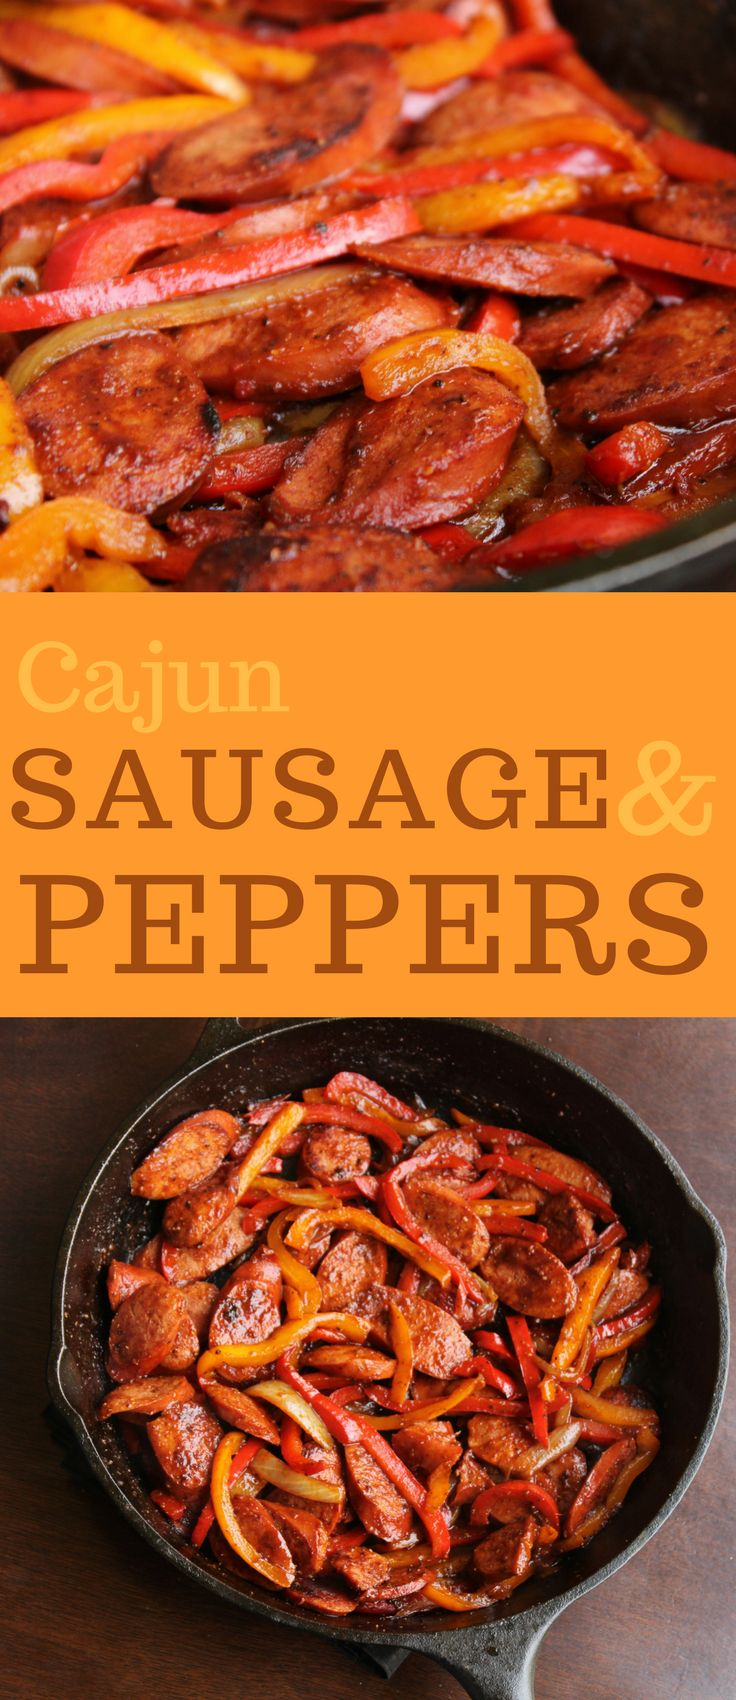 Cajun Sausage and Peppers. Smoked sausage, peppers, onions, Cajun seasoning make a great meal to serve for dinner any weeknight.